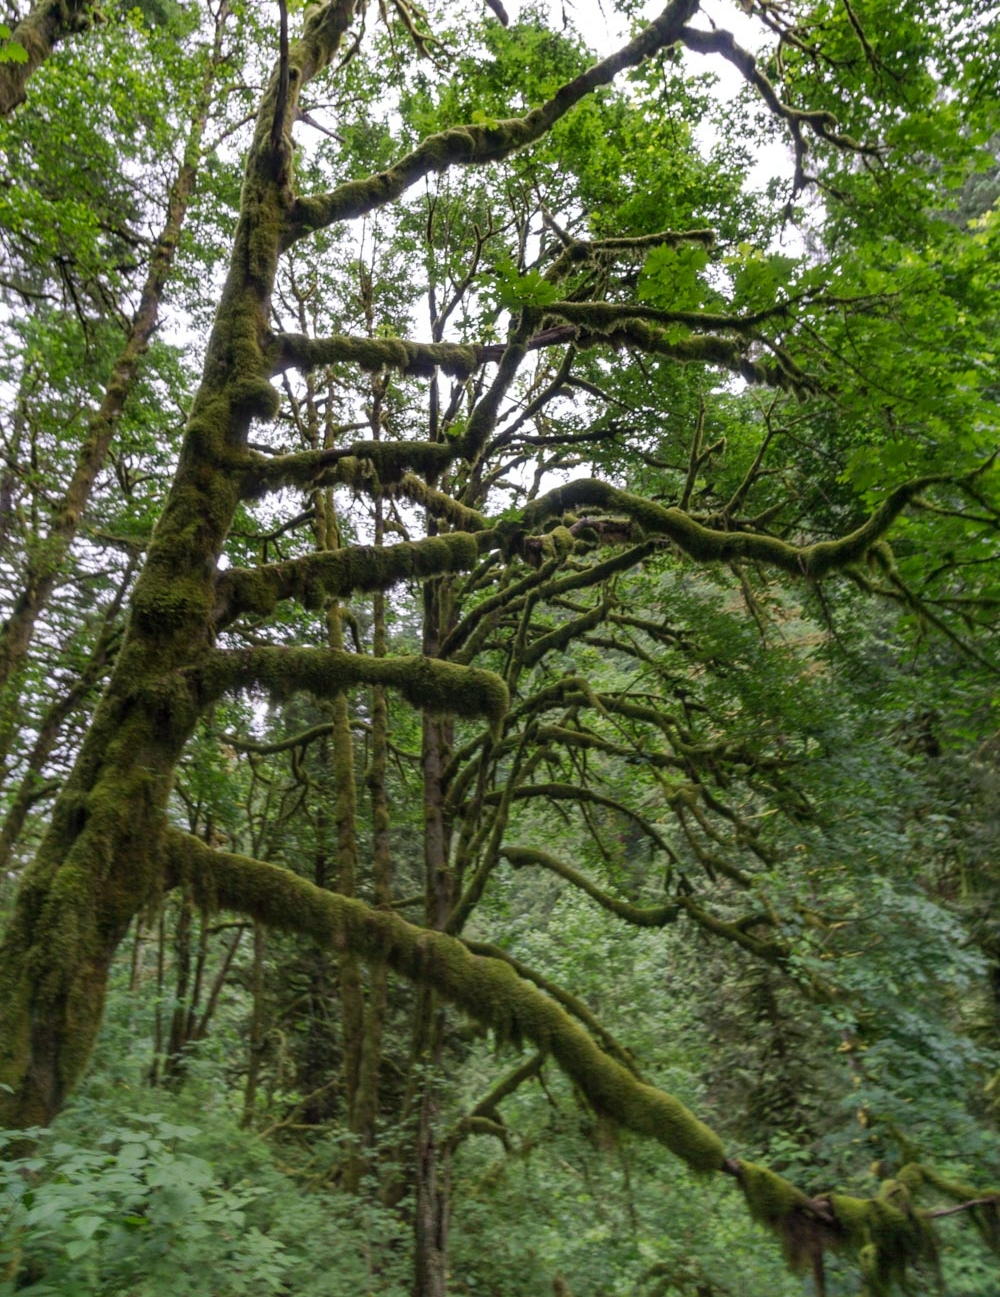 Moss-covered gangly tree branches